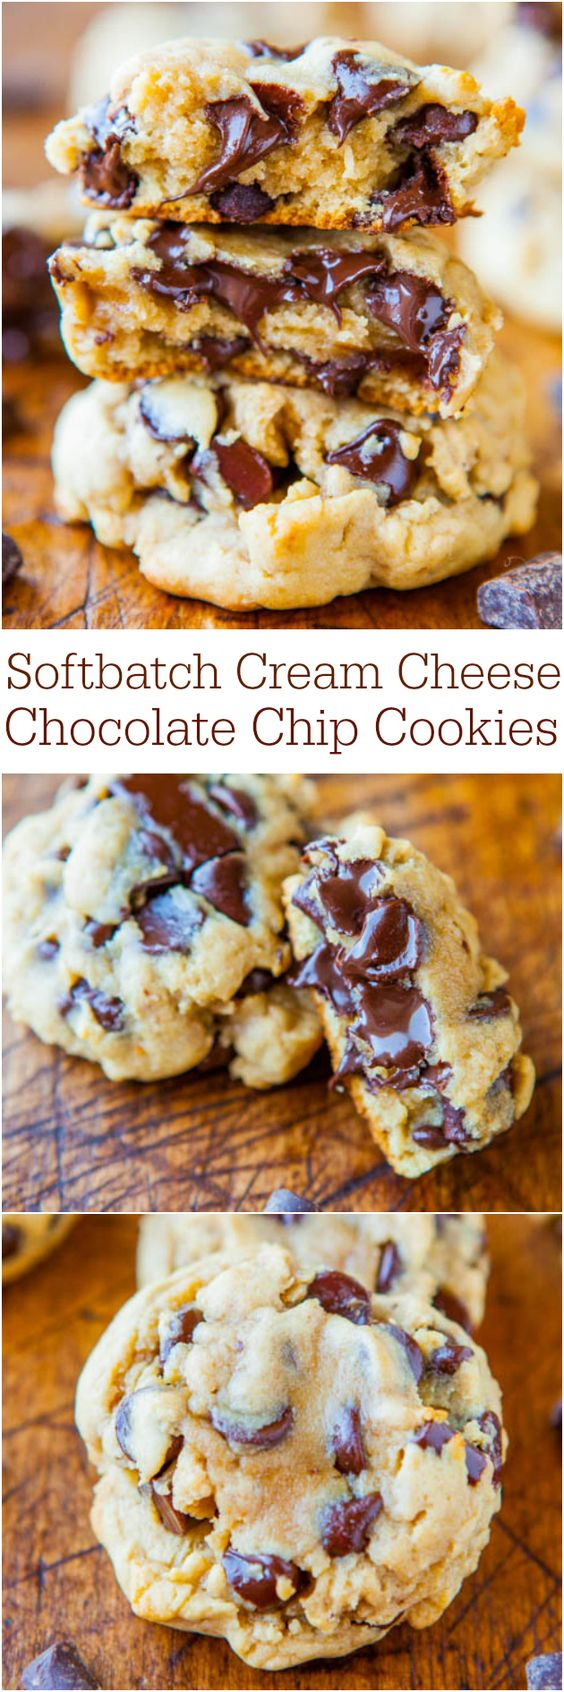 Softbatch Cream Cheese Chocolate Chip Cookies - Move over butter, cream cheese makes these cookies thick and super soft!: